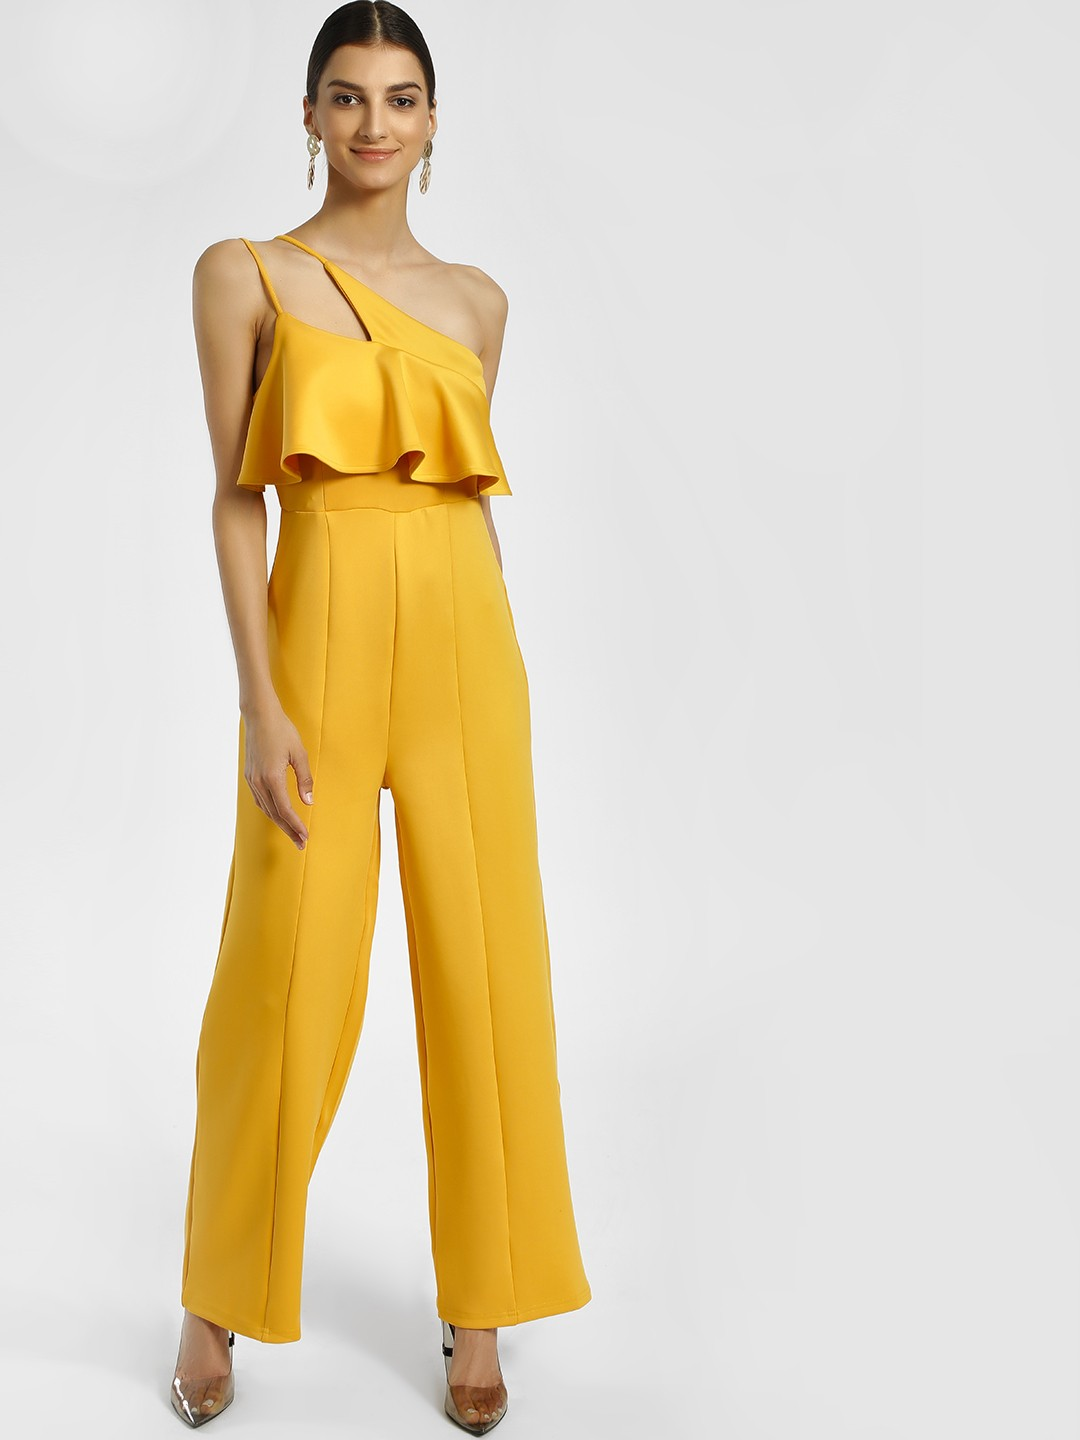 KOOVS Yellow Asymmetric Neck Sleeveless Jumpsuit 1